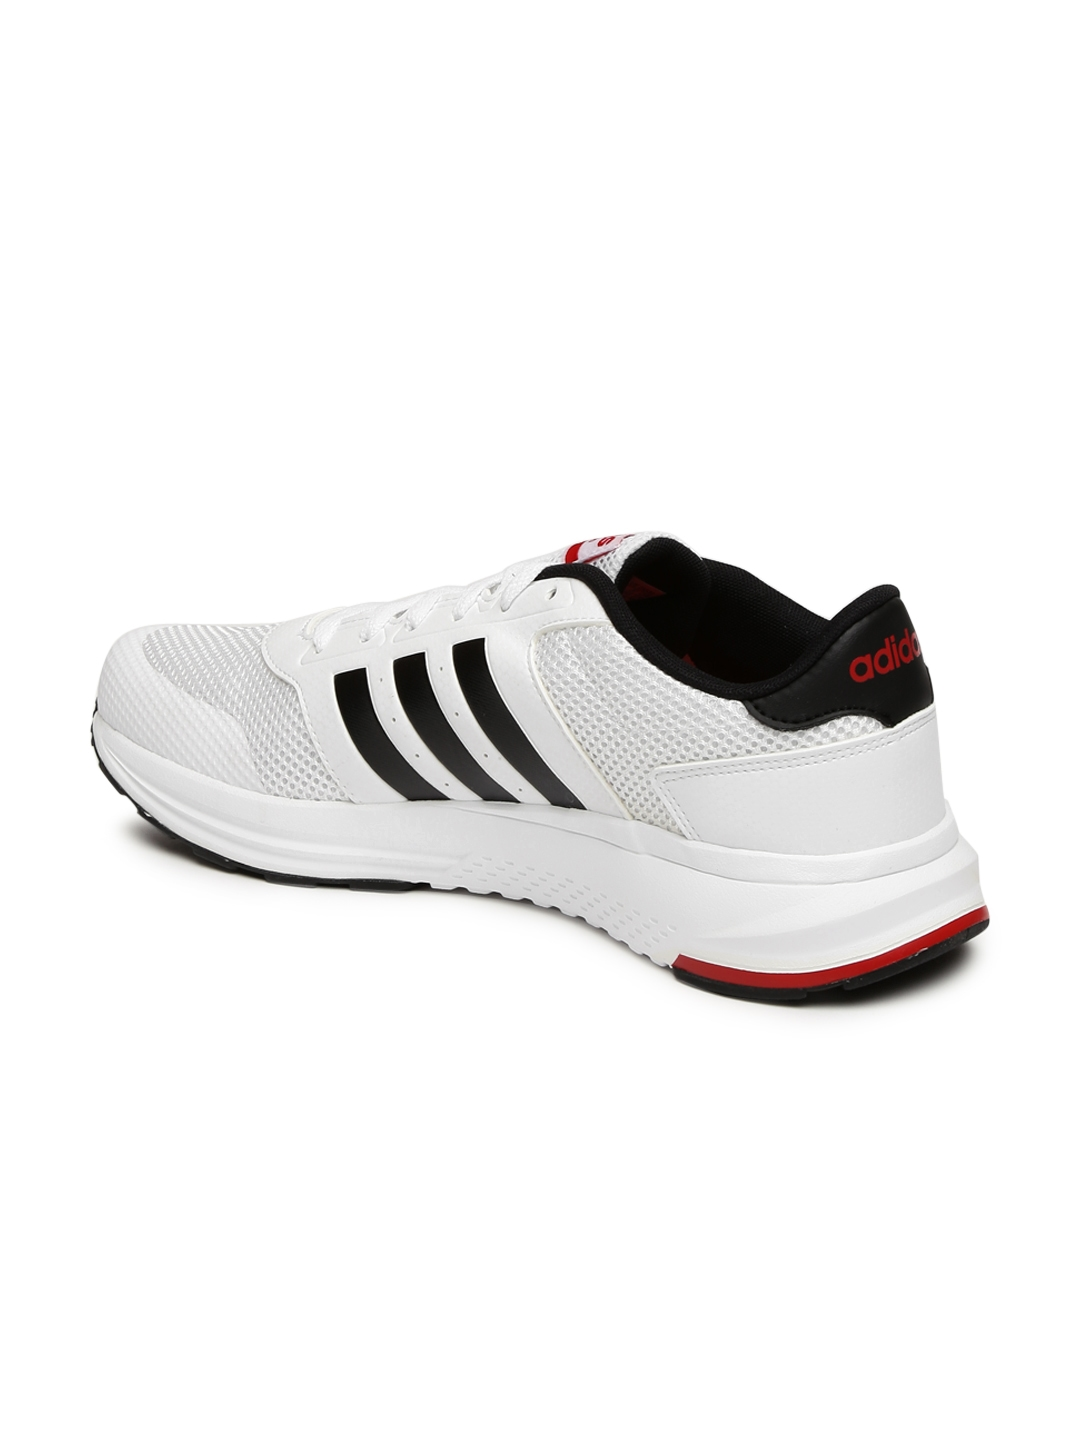 half off a7251 e48db ADIDAS NEO Men White Cloudfoam Saturn Sneakers